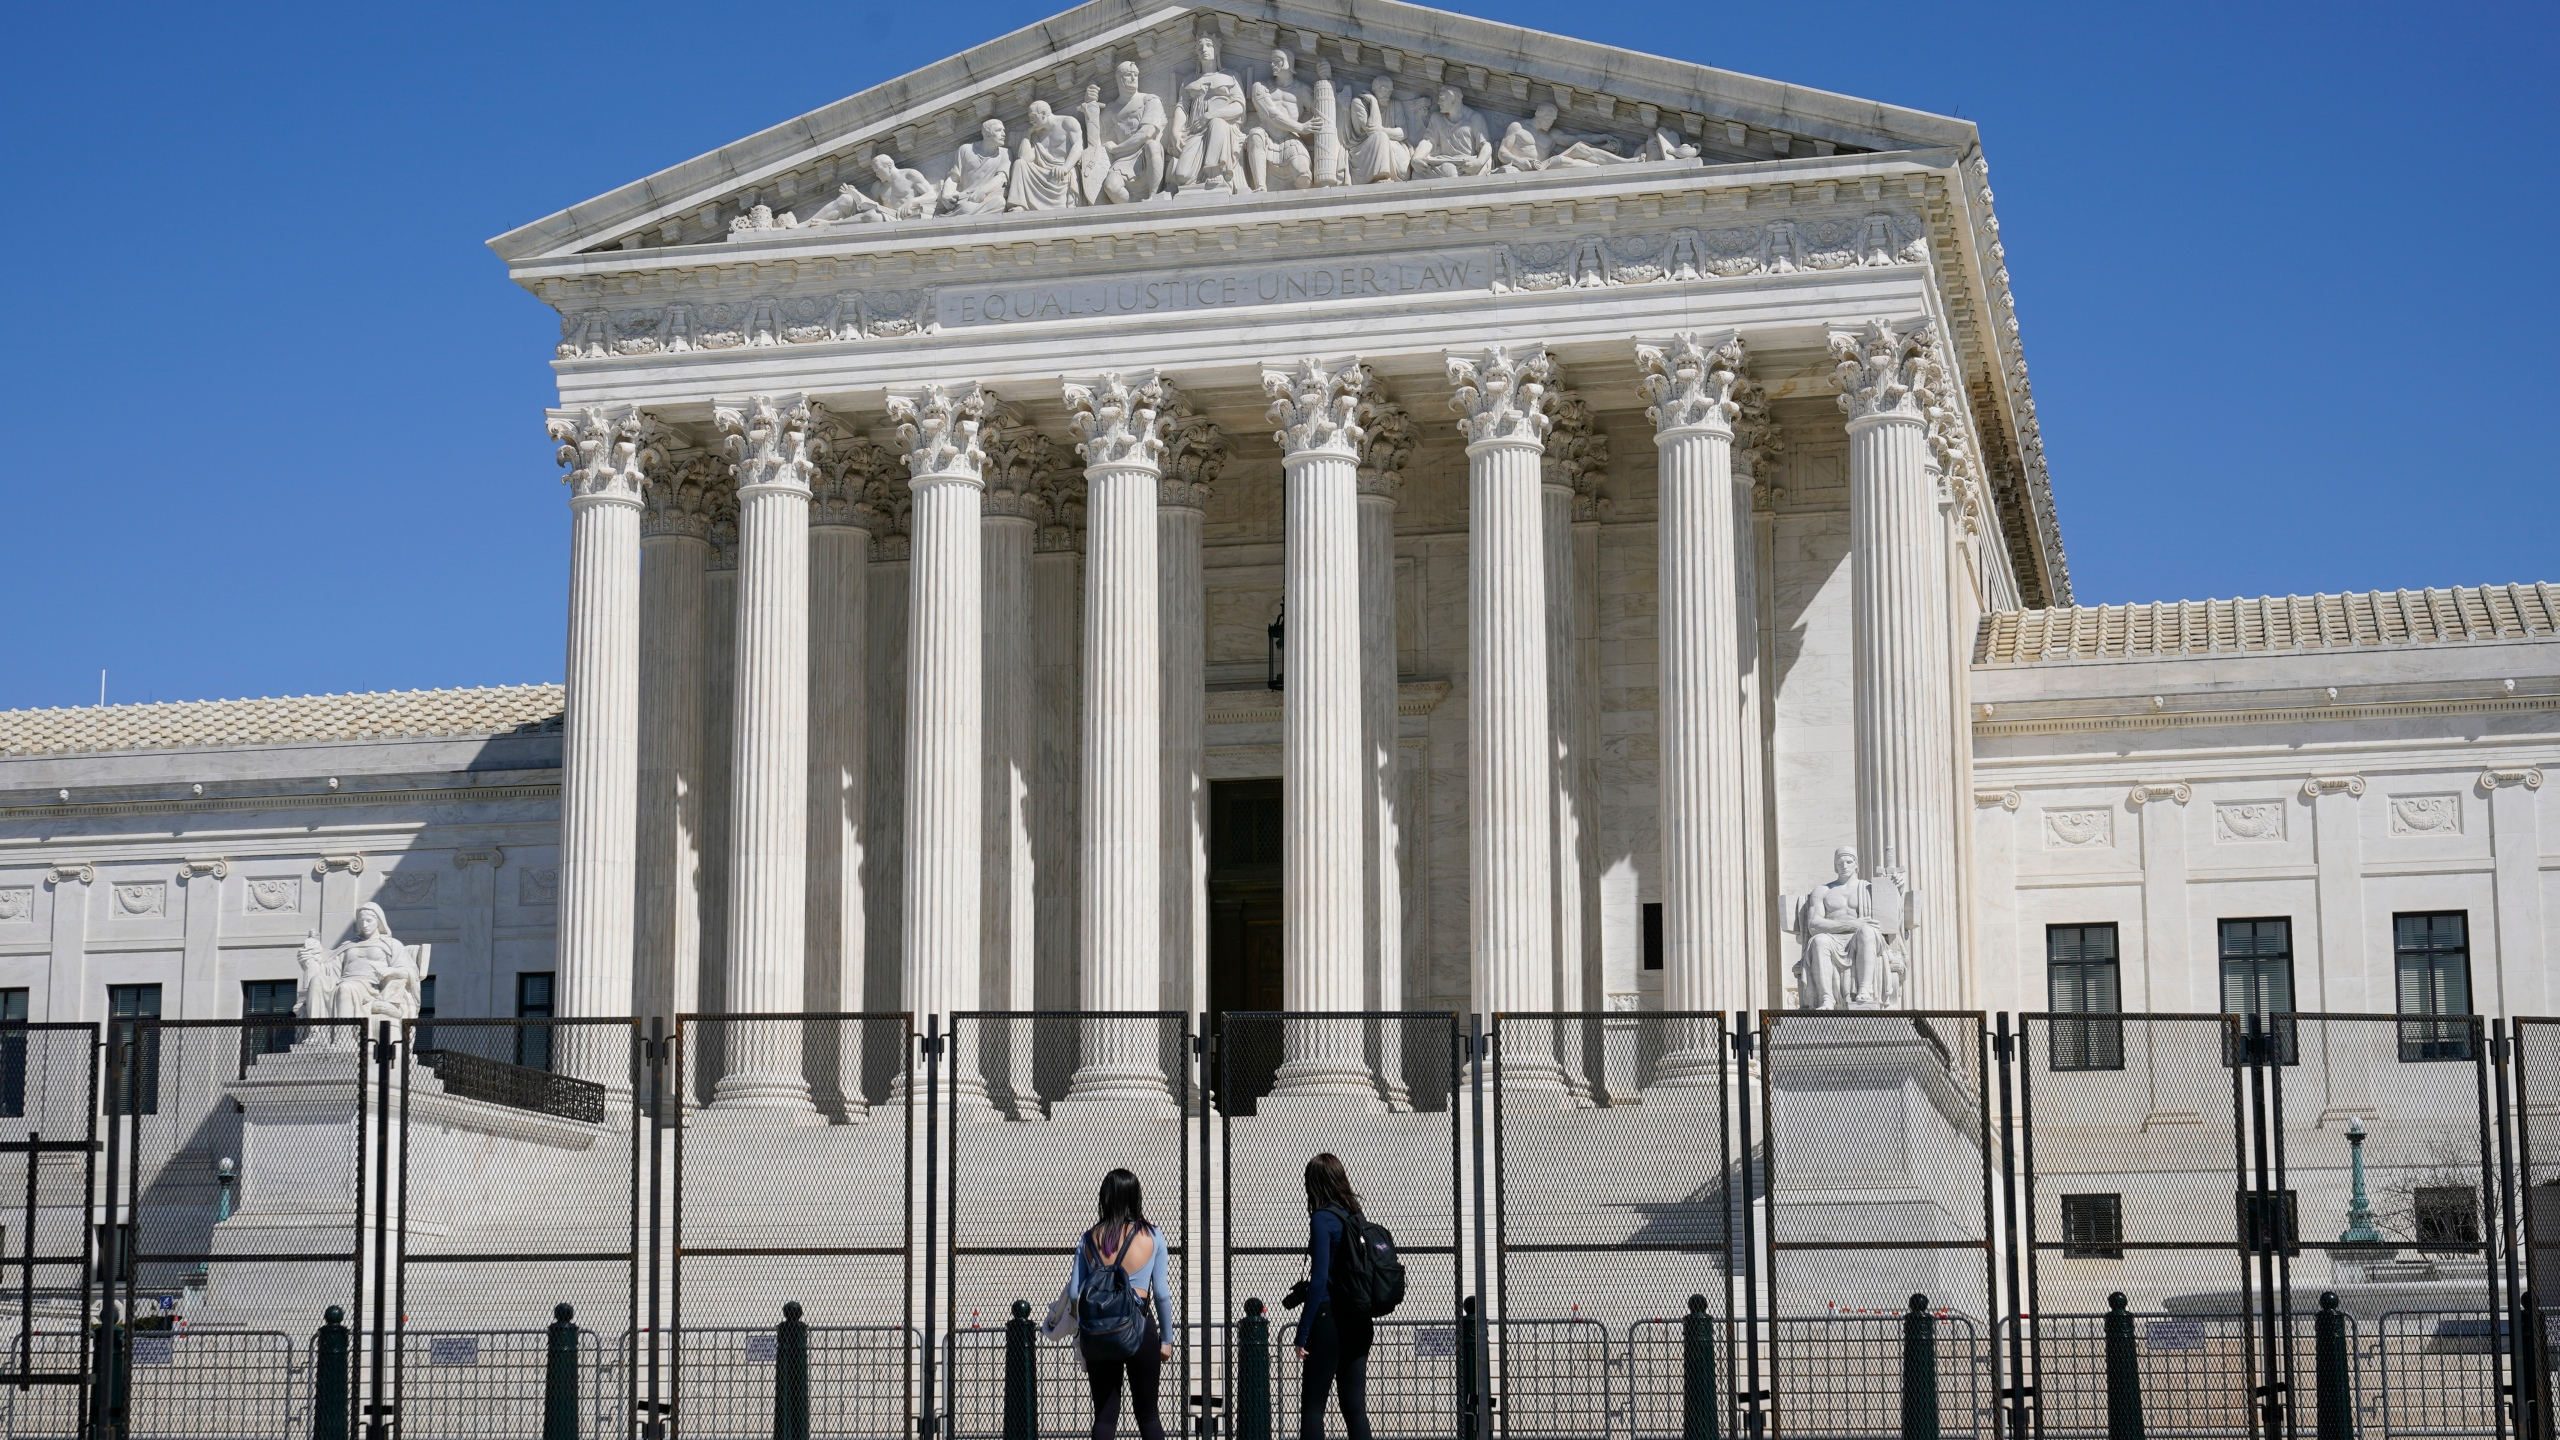 People view the Supreme Court building from behind security fencing on March 21, 2021. (Patrick Semansky/Associated Press)